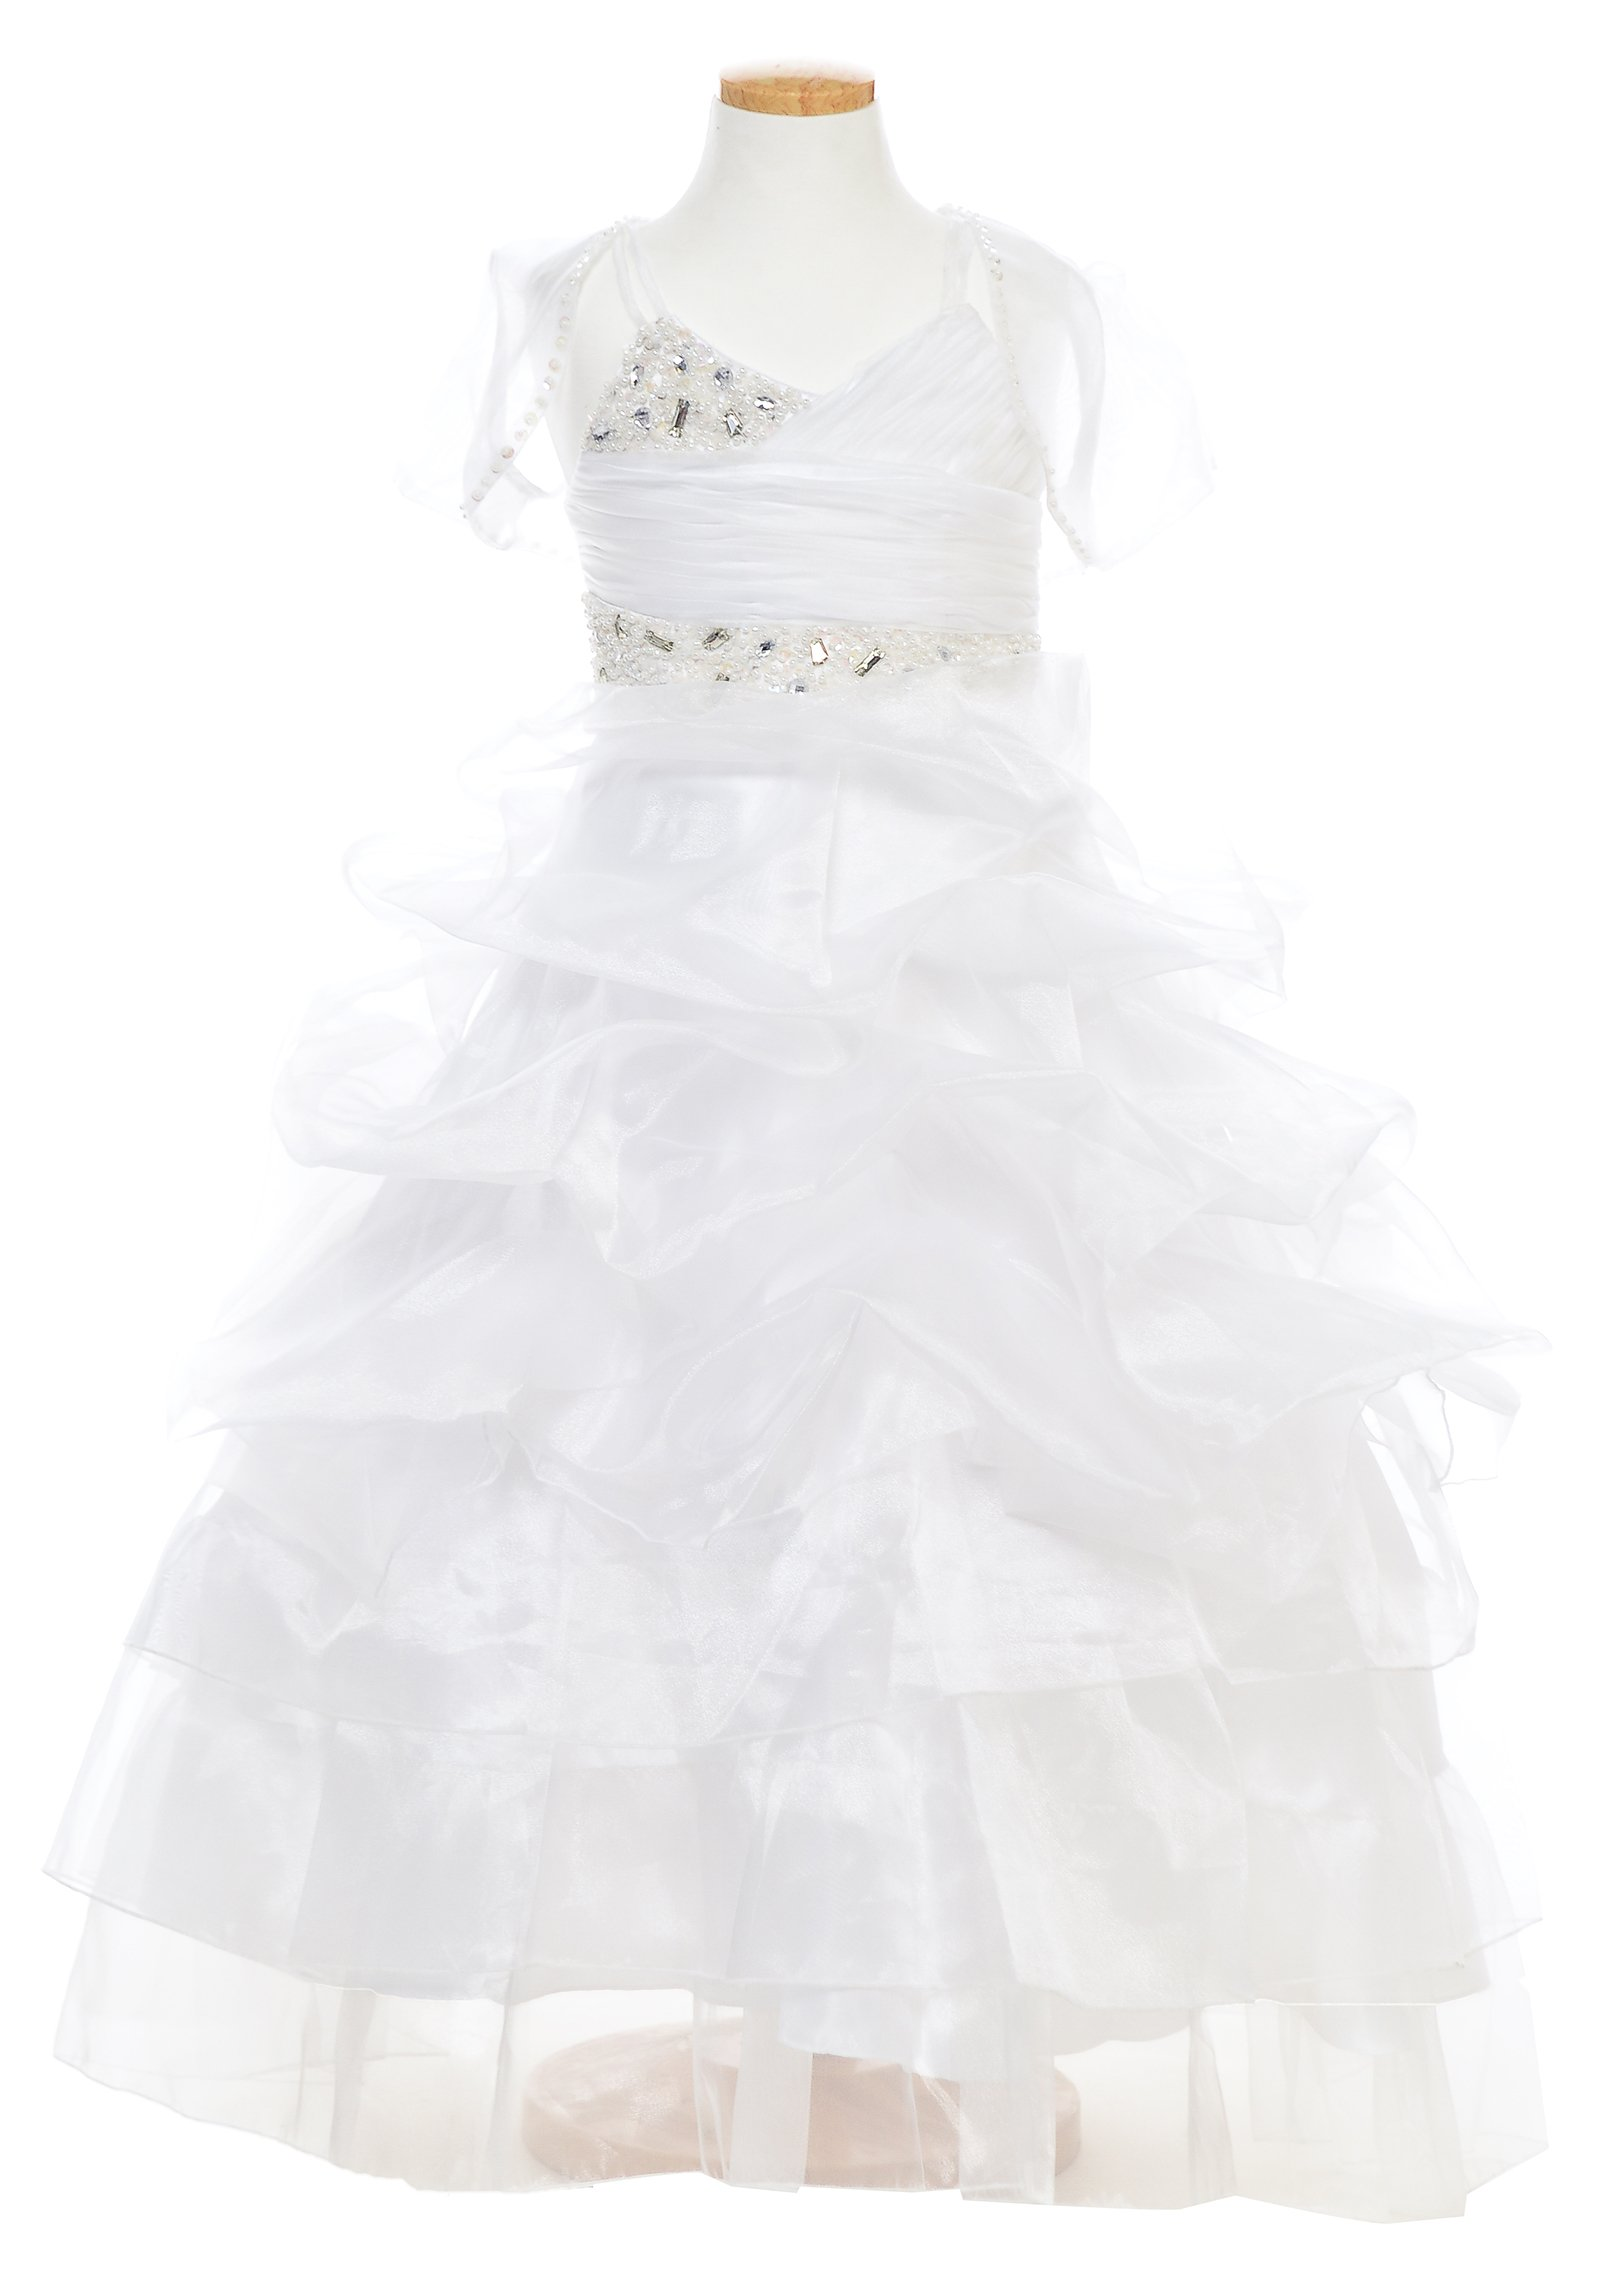 TwinMod Embellished 4 Layer Ruffled Flower Girl Pageant Dress (16, WHITE) by TwinMod